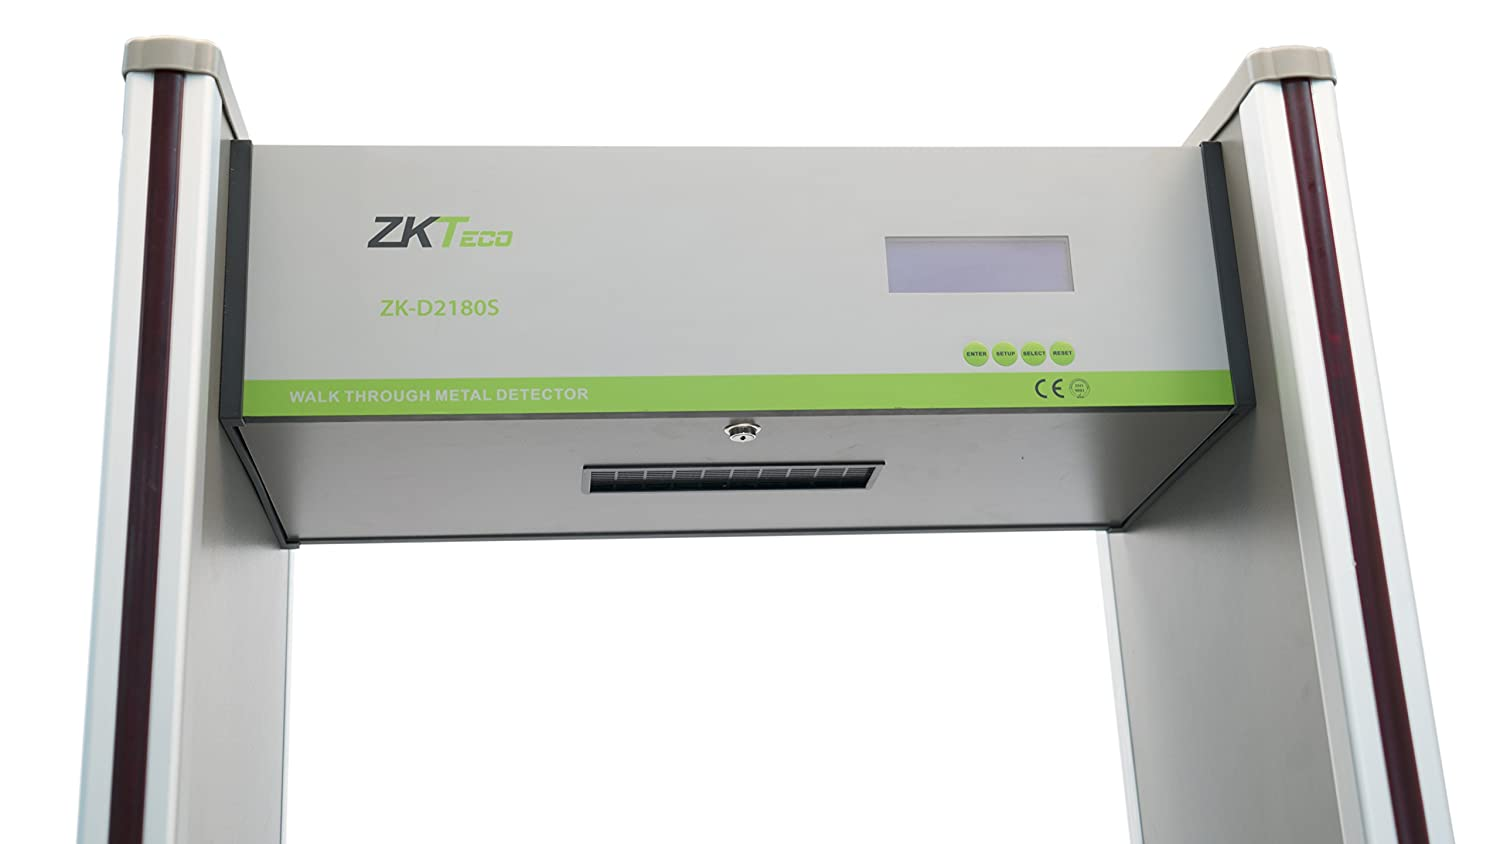 Amazon.com : ZKTeco High Sensitive Walk Through Metal Detector 18 Zone : Garden & Outdoor